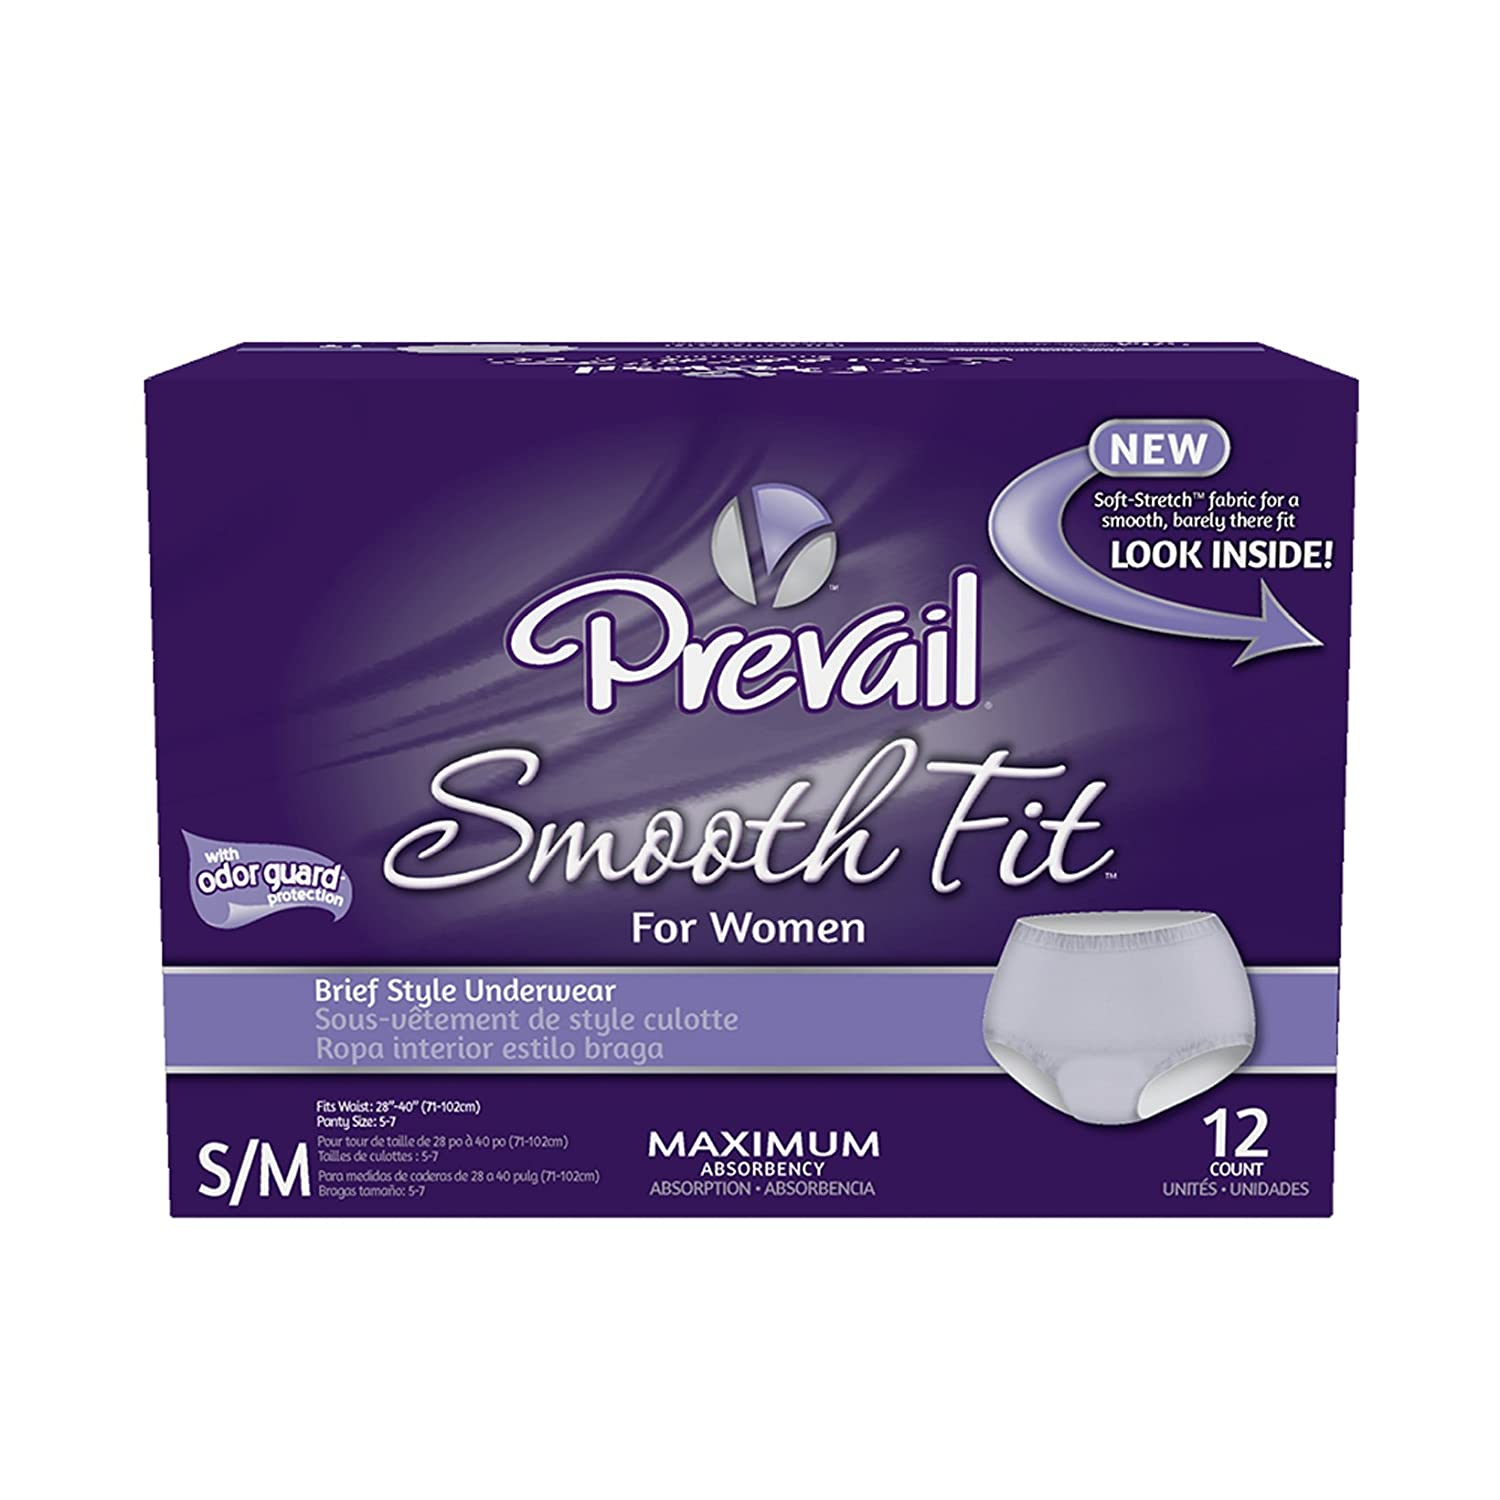 Amazon.com: Prevail Maximum Absorbency Smooth Fit Incontinence Underwear for Women, Small/Medium, 12-Count: Health & Personal Care